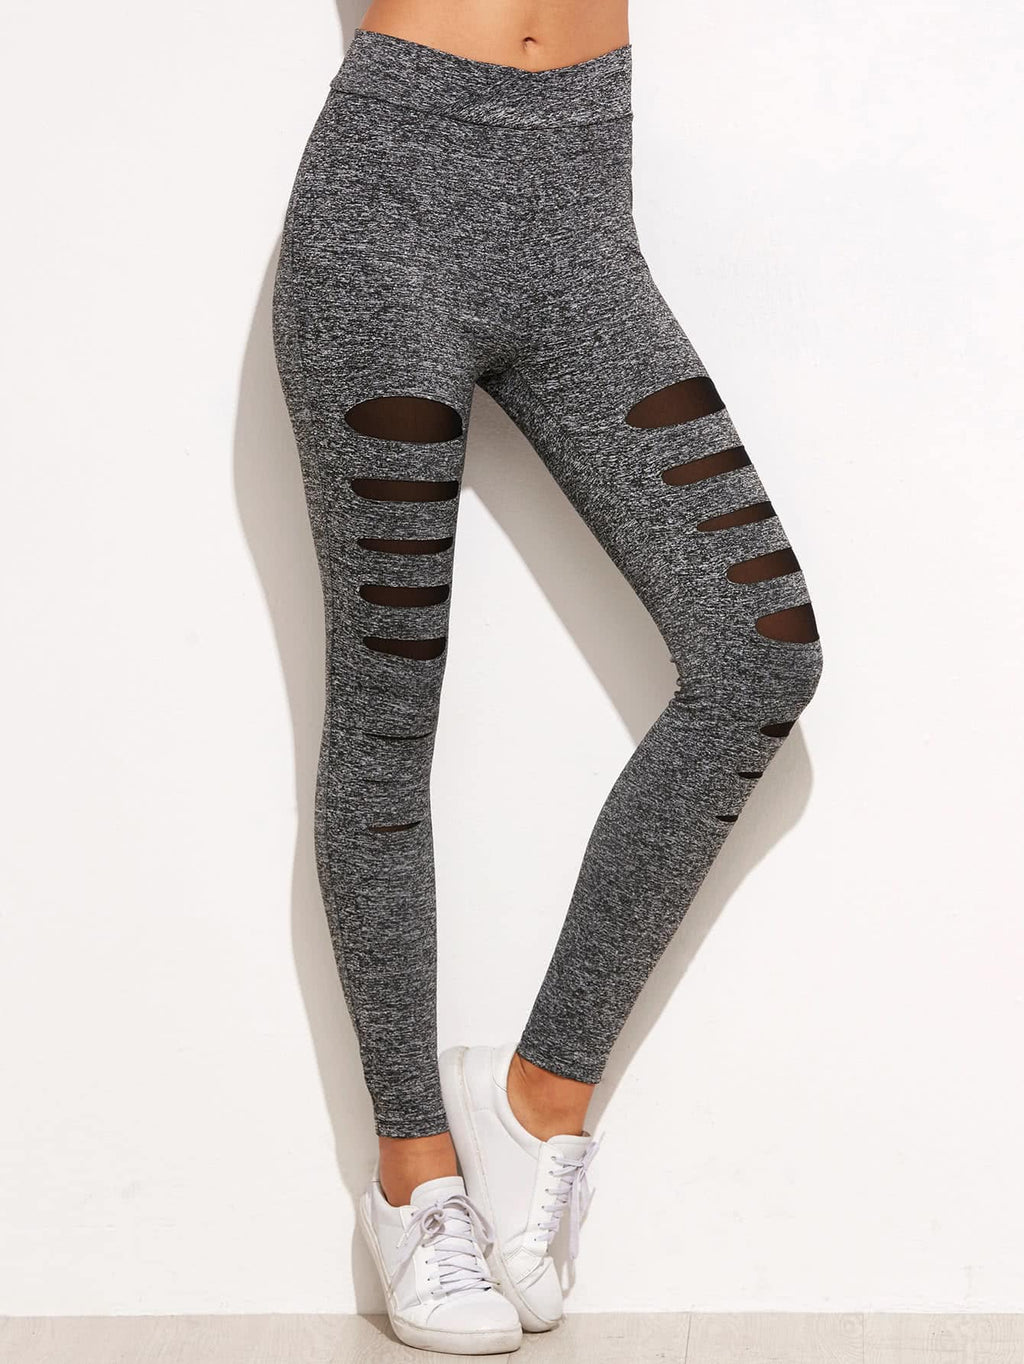 Tights For Women - Marled Knit Mesh Insert Ripped Leggings